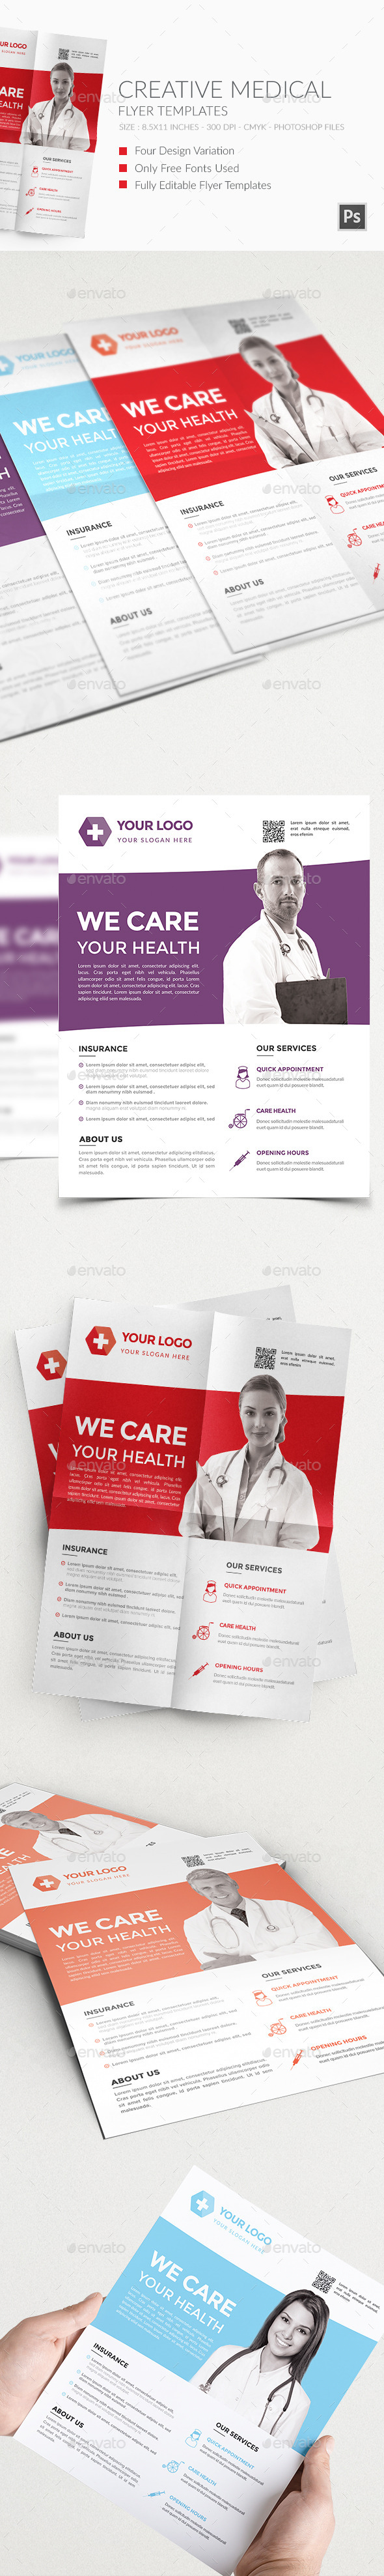 Medical Flyers Templates 3 - Corporate Flyers